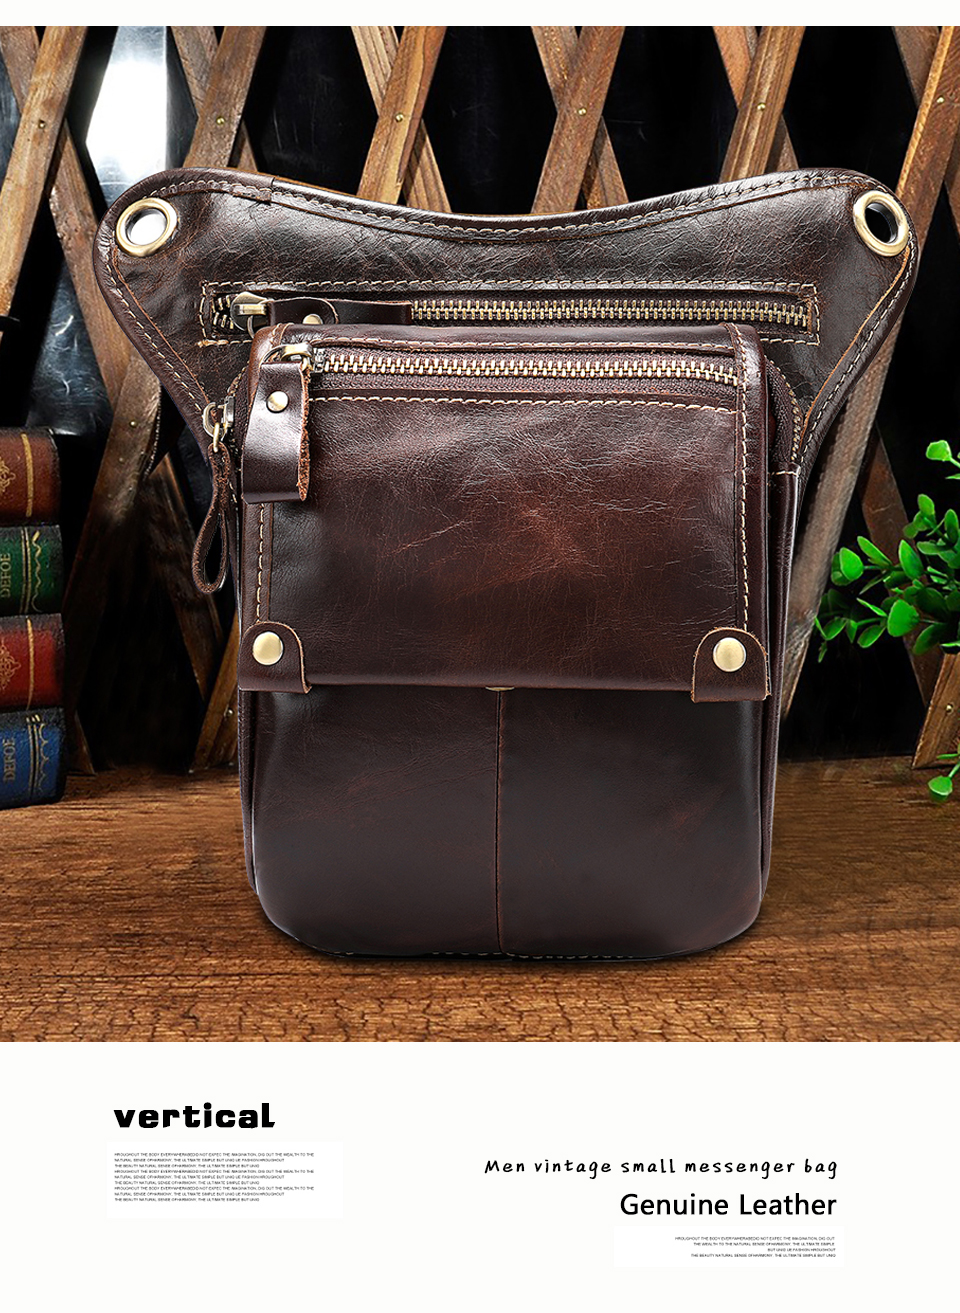 HTB1cbscajDuK1RjSszdq6xGLpXat - WESTAL Genuine Leather leg bag in Waist Pack motorcycle Fanny Pack Belt Bags Phone Pouch Travel Male Small leg bag tactical 3237